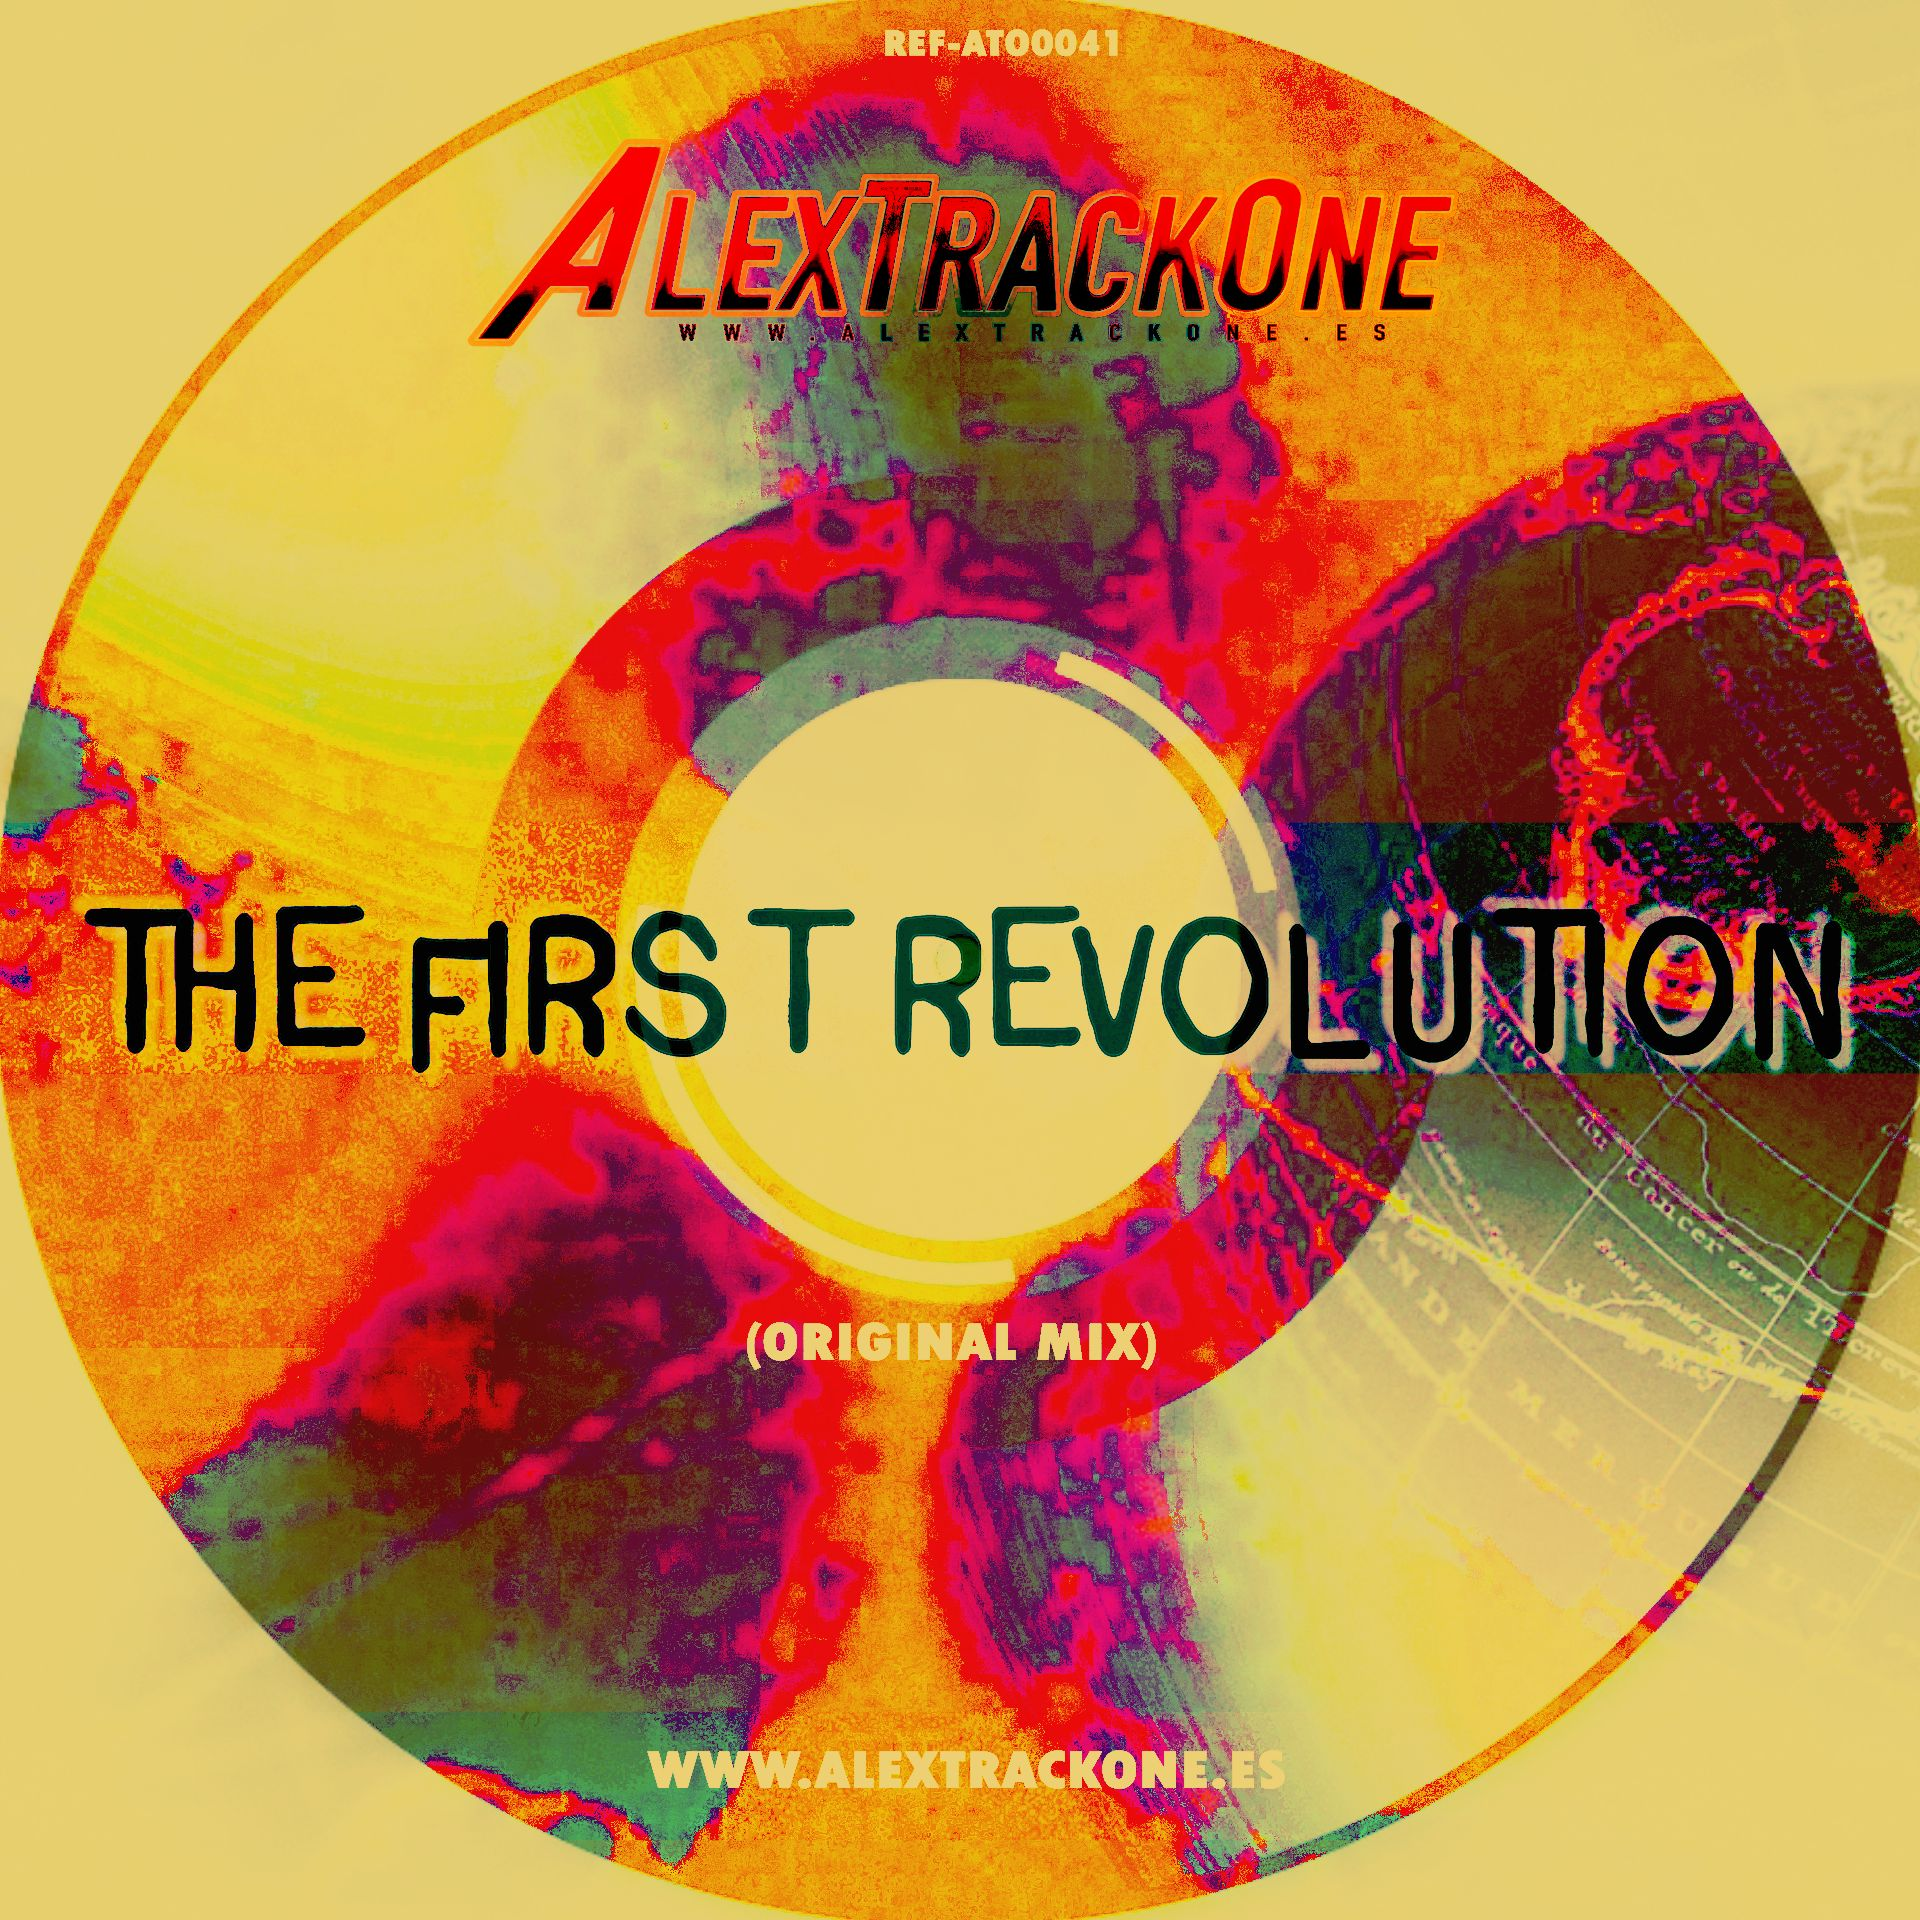 REF-ATO0041 THE FIRST REVOLUTION (ORIGINAL MIX) (MP3 & WAV)